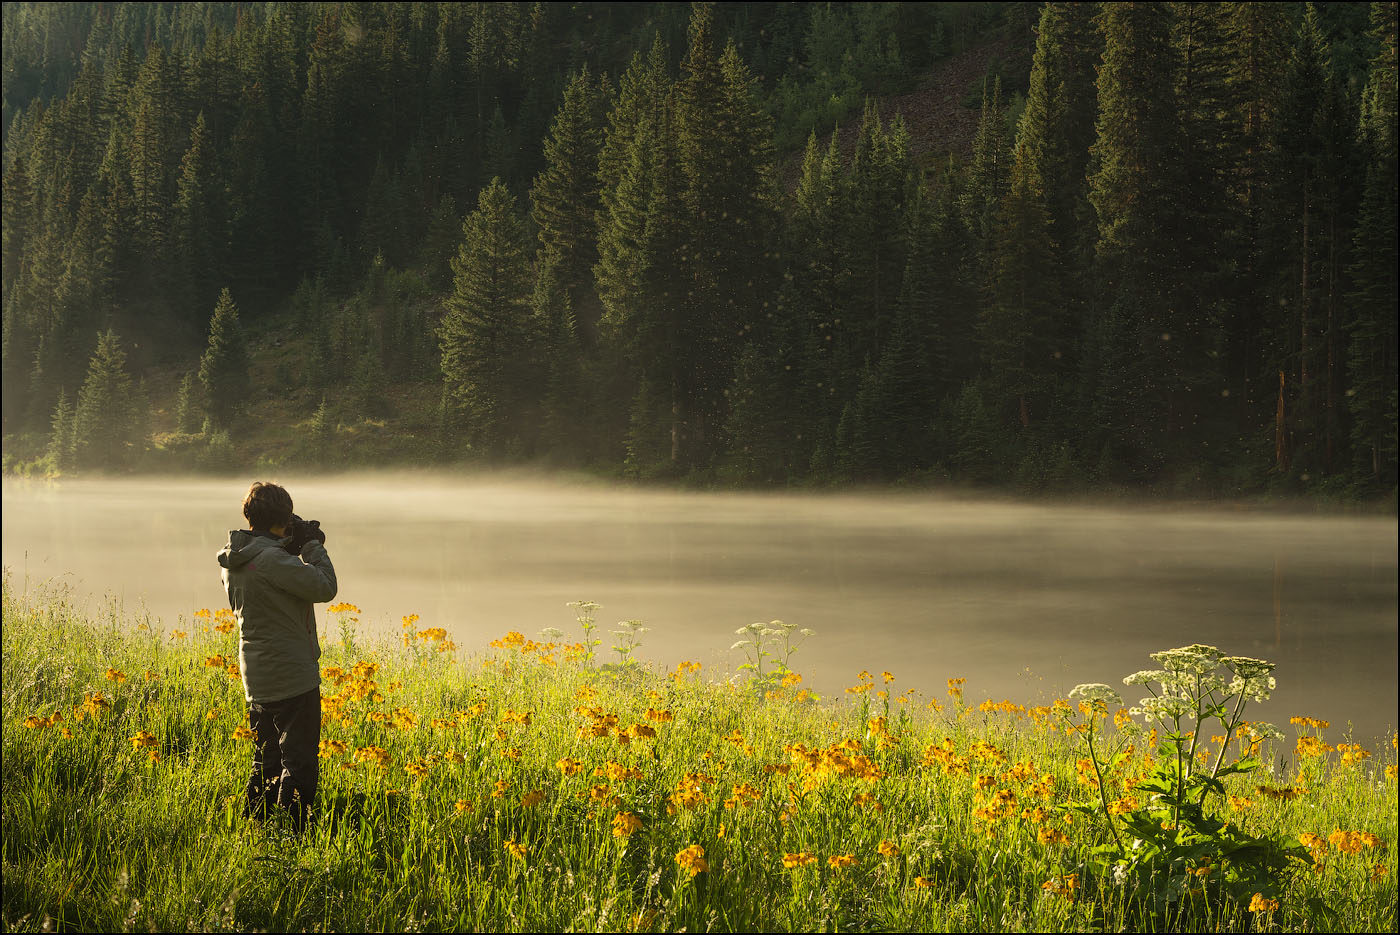 Photographer in meadow along river